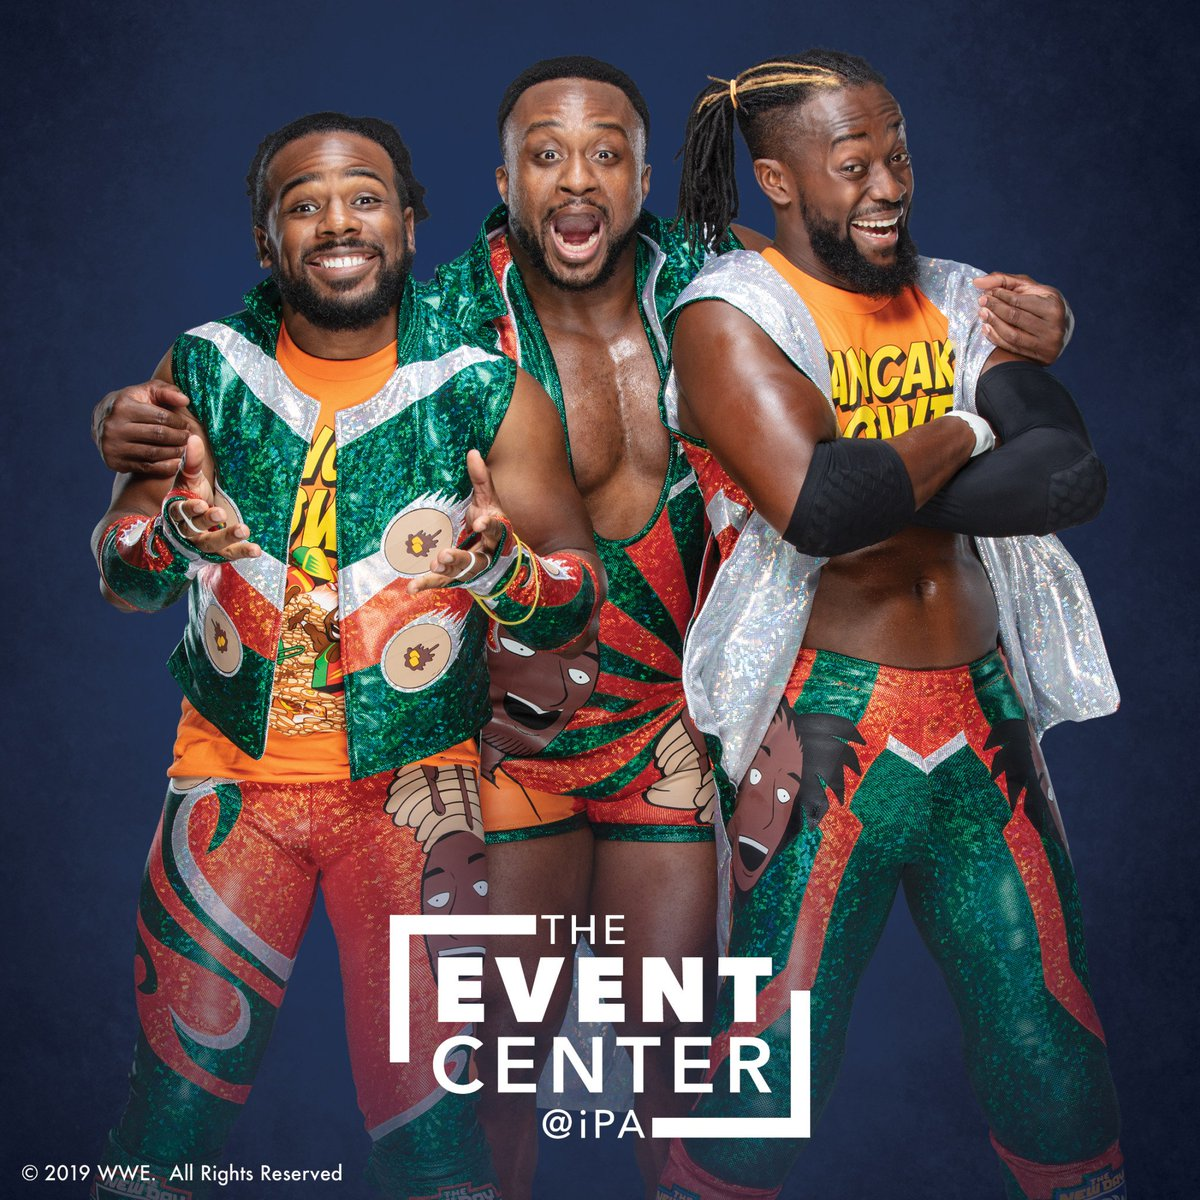 .@TrueKofi, @WWEBigE, and @XavierWoodsPhD of @WWE's The New Day will be here on September 29th for a photo op & autograph signing experience. Plus, they'll be making a SPECIAL appearance in the VIP pancake breakfast @GameTimeBarNJ! 🥞 Tickets: http://bit.ly/30tZyxA